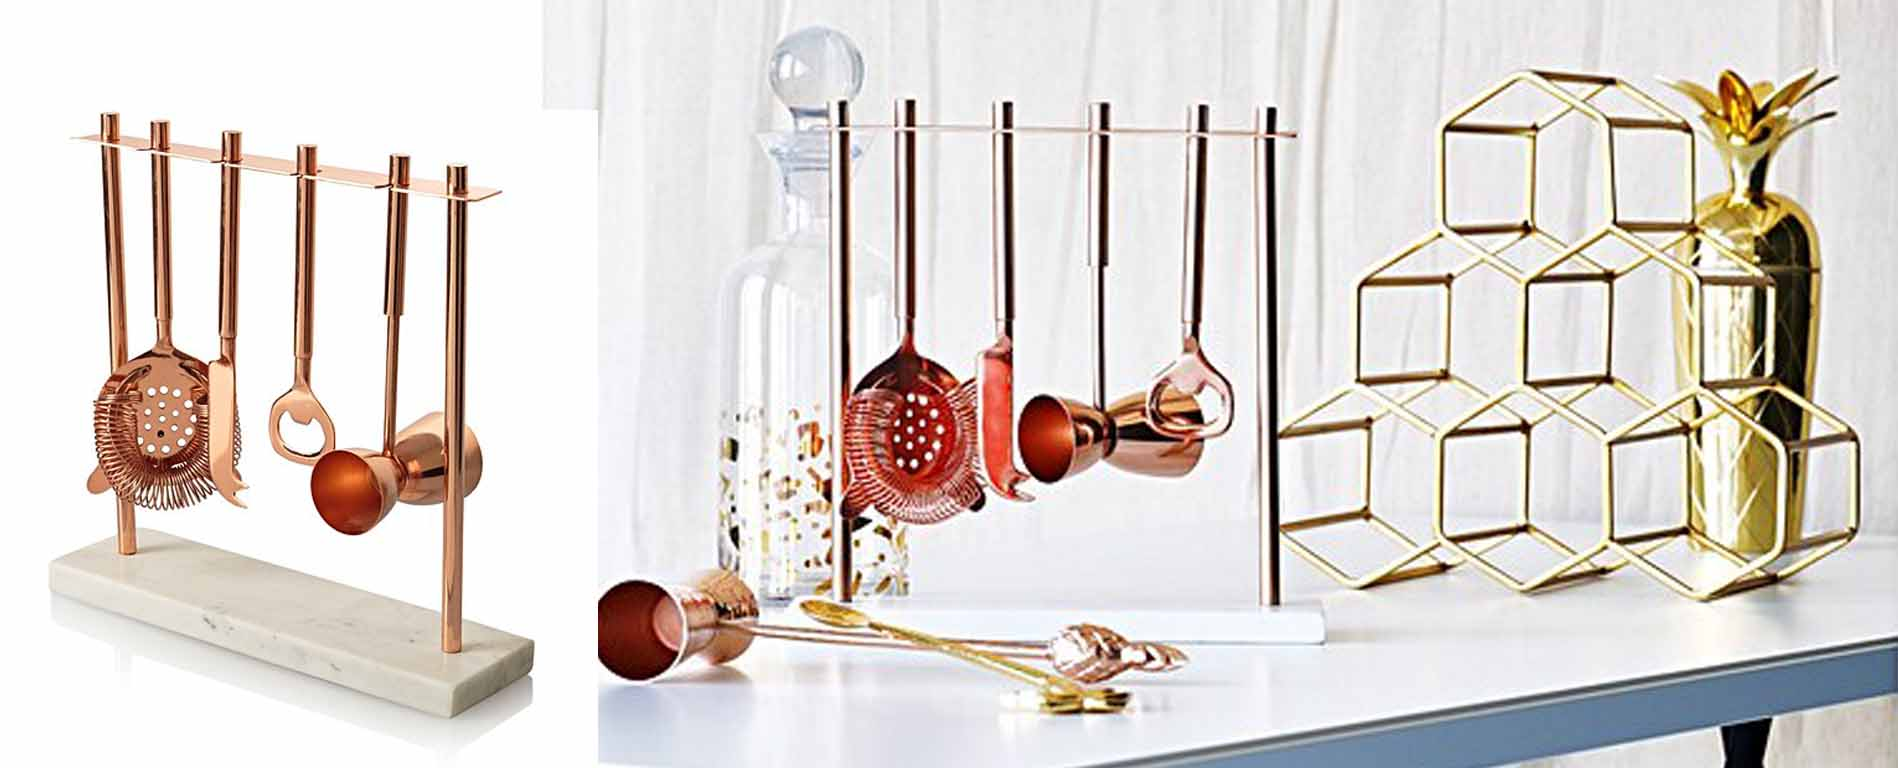 Oliver Bonas Cocktail Marble Copper Bar Set